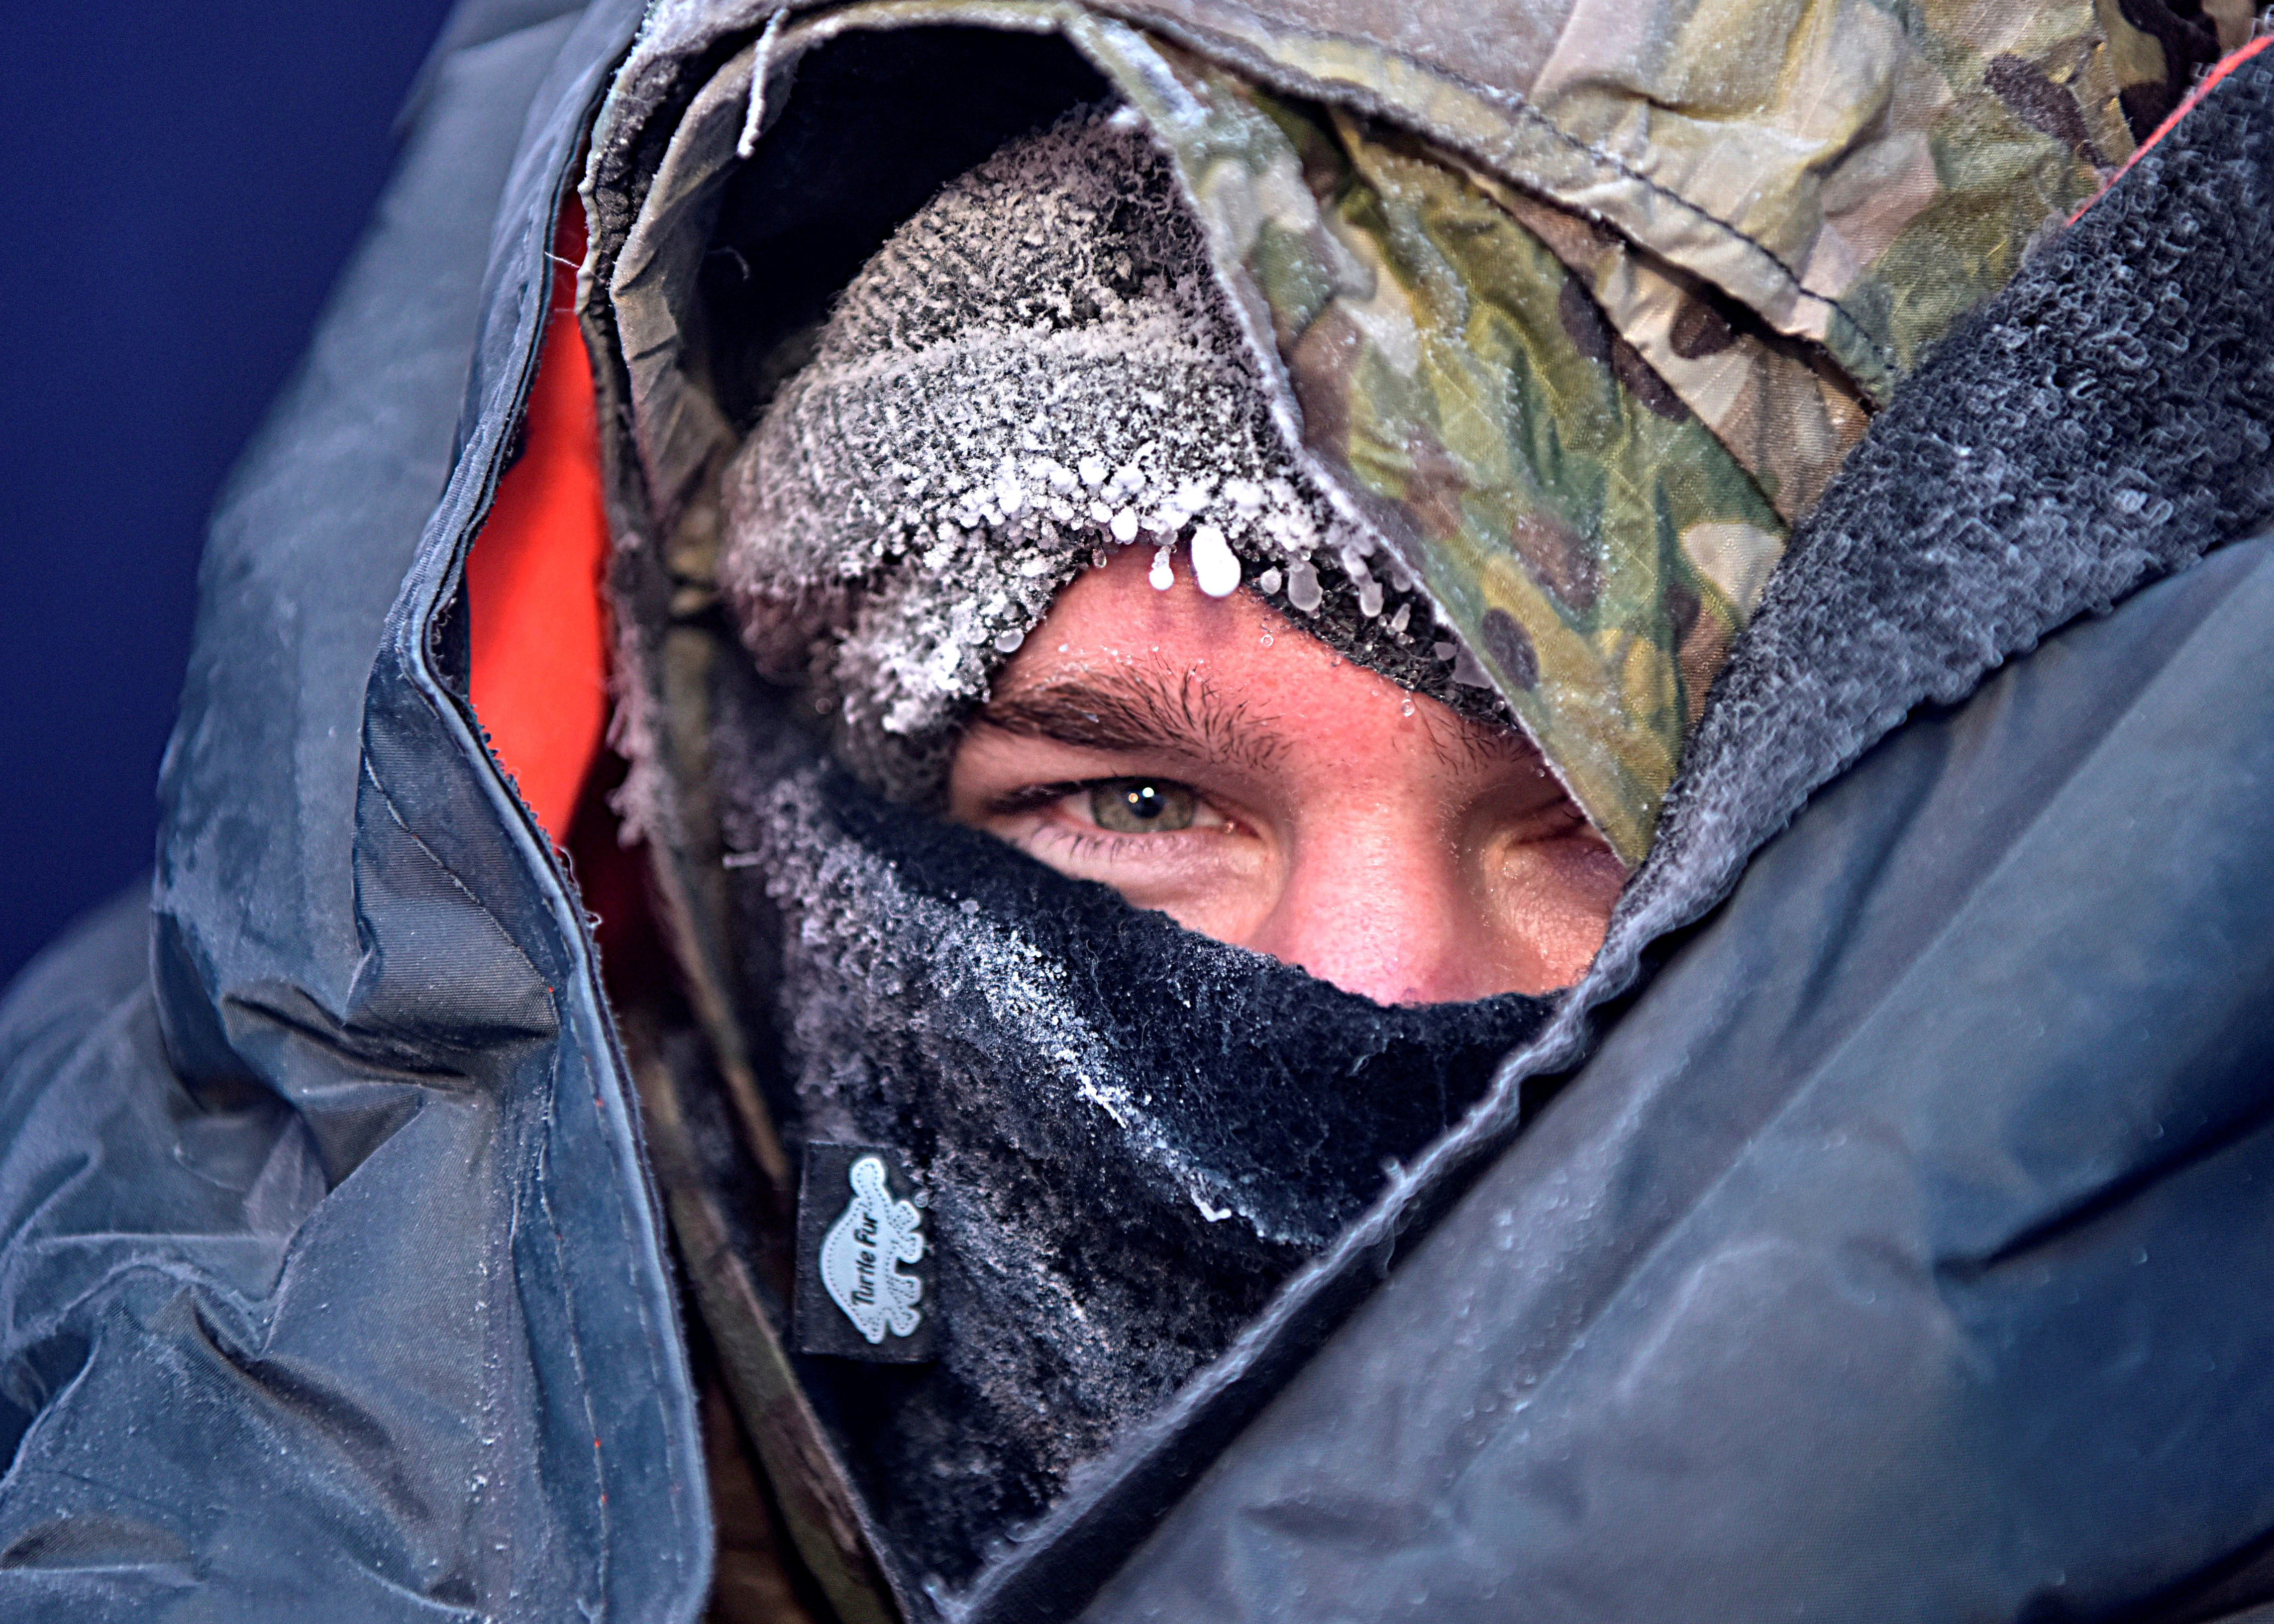 Staff Sgt. Zachary Rumke, 66th Training Squadron Detachment 1 Arctic Survival School instructor, tests an F-35A Lightning II survival-gear kit in Fairbanks, Alaska, Nov. 5, 2019. Rumke sat in minus 65 degree temperatures for six hours to test the new gear that could be used to protect F-35 pilots from subzero temperatures in the event of an ejection. (Senior Airman Beaux Hebert/Air Force)